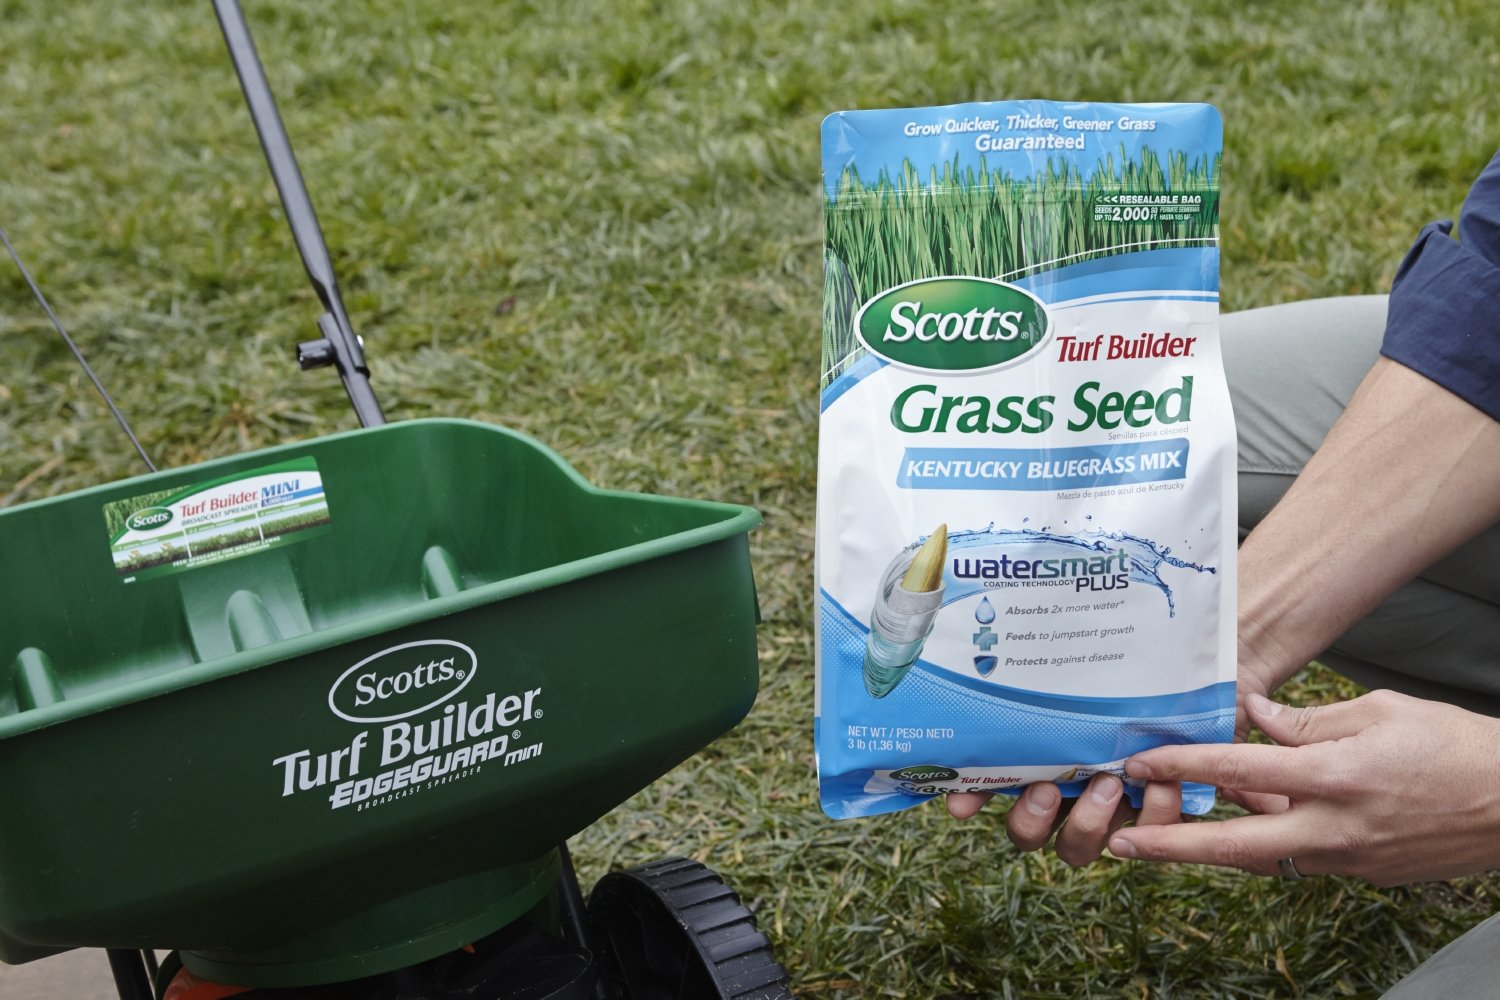 Scotts Turf Builder Grass Seed Image 1